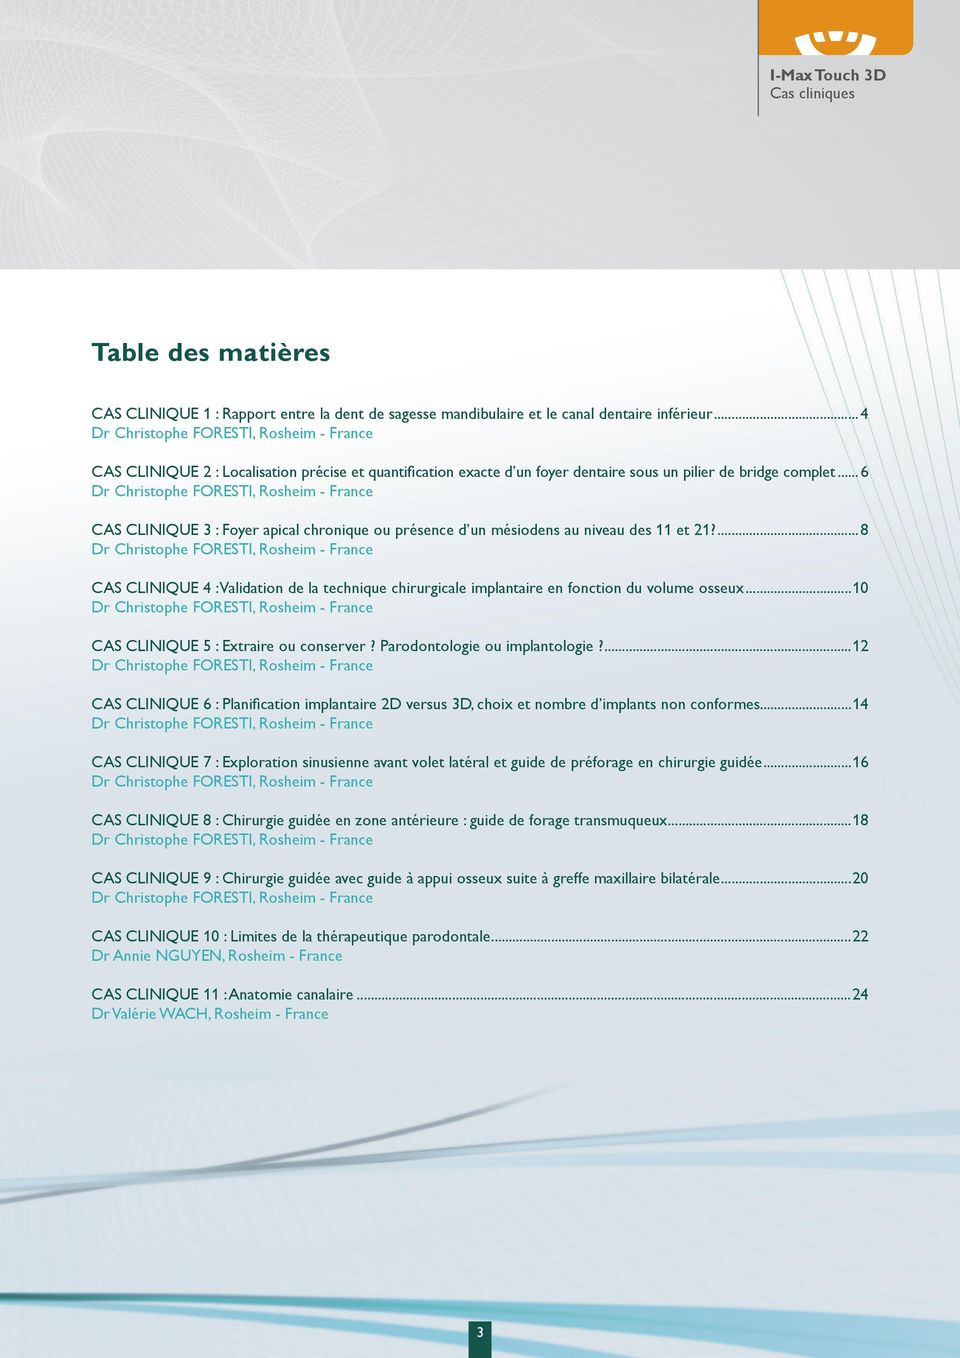 ..6 CAS CLINIQUE 3 : Foyer apical chronique ou présence d un mésiodens au niveau des 11 et 21?...8 CAS CLINIQUE 4 : Validation de la technique chirurgicale implantaire en fonction du volume osseux.